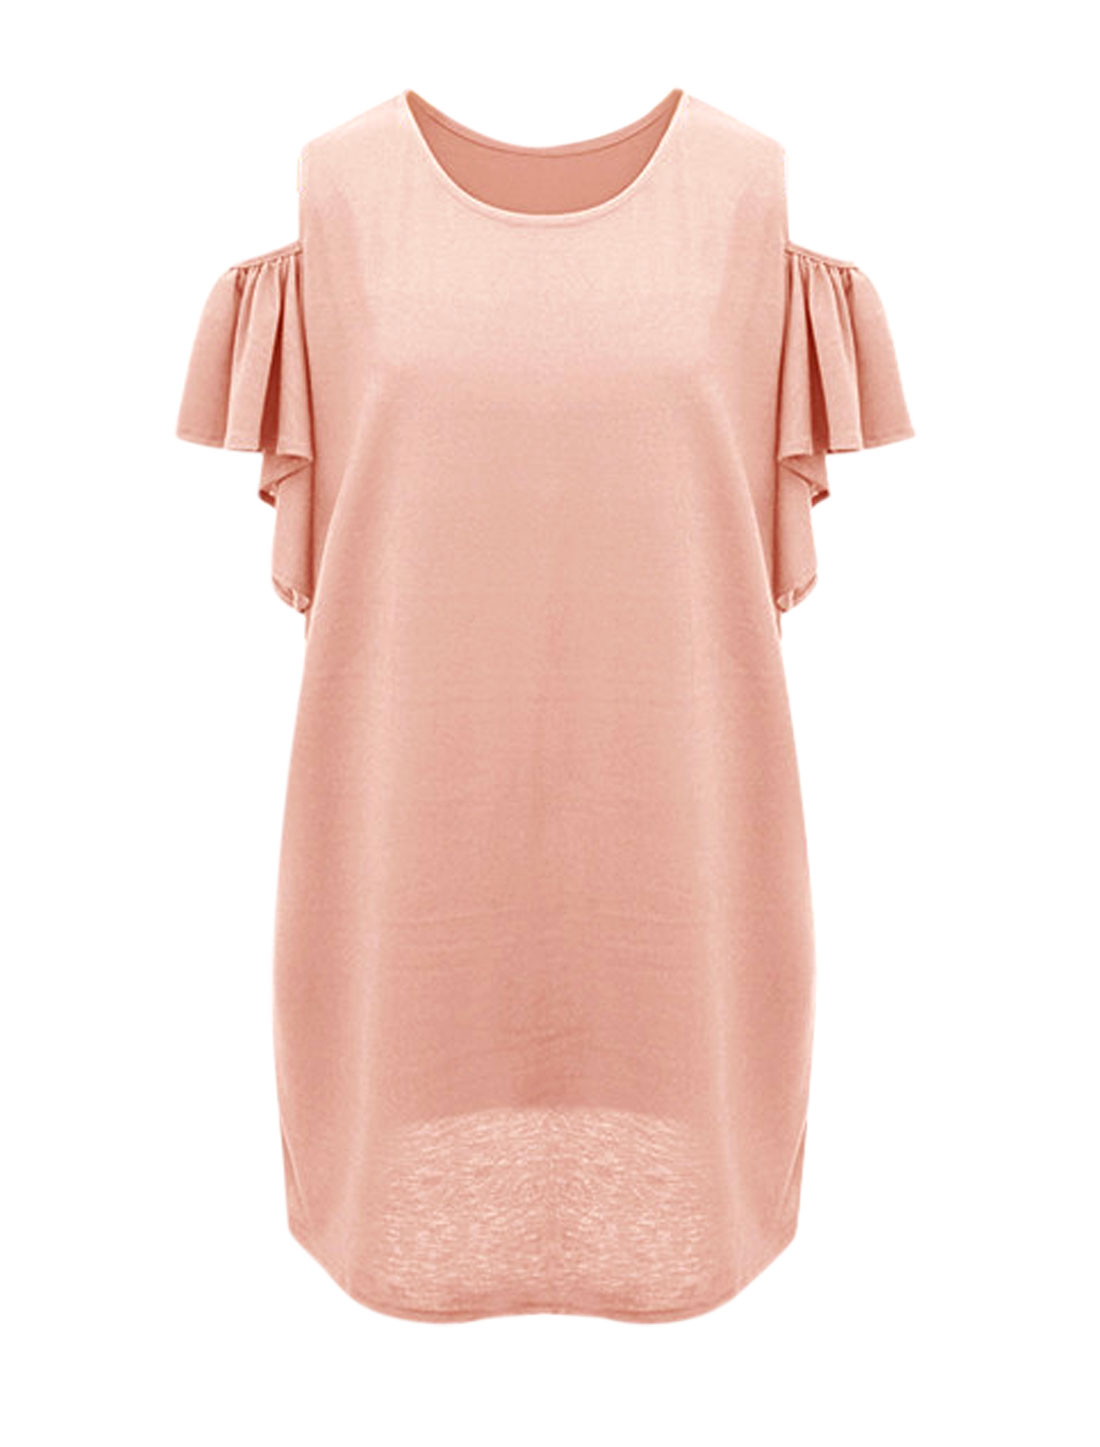 Women Bell Sleeve Round Neck Cut Out Shoulder Dress Pale Pink L